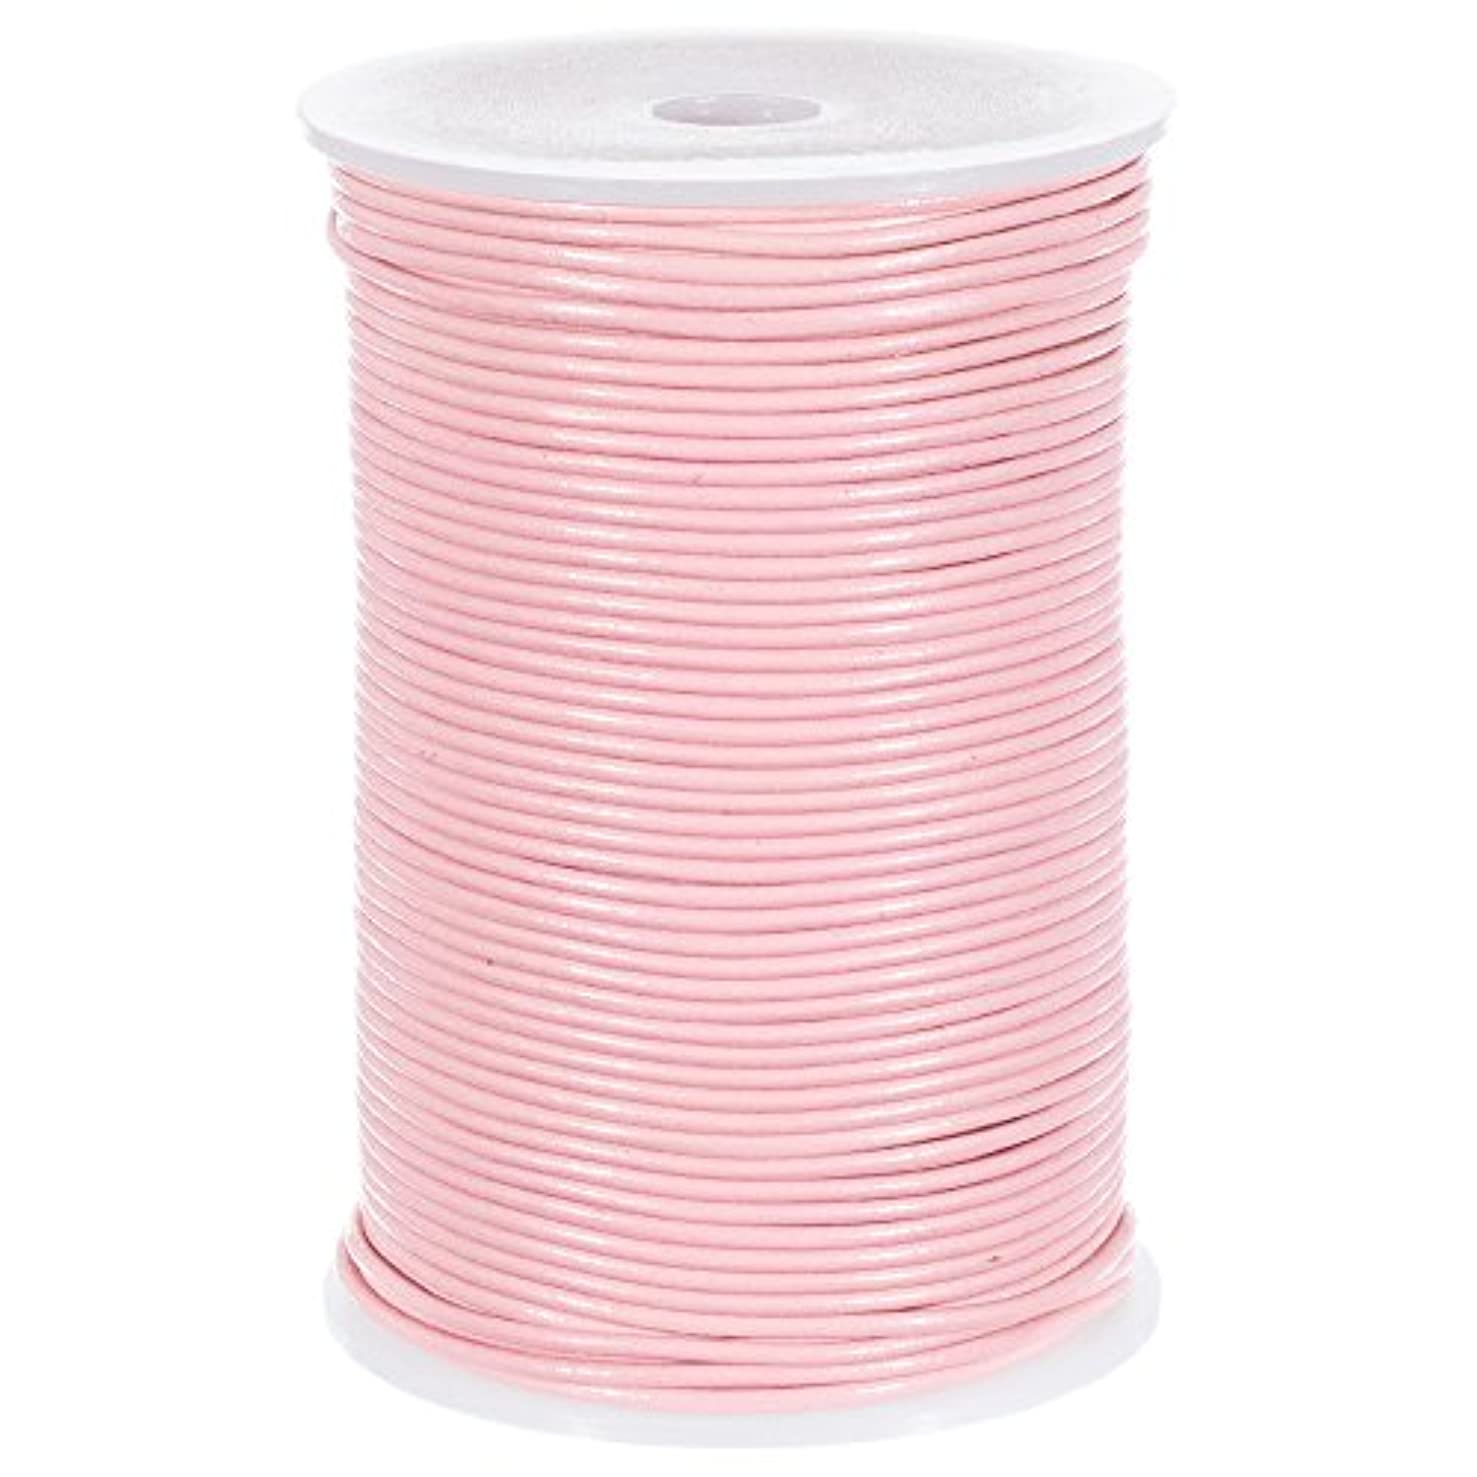 25 Yards of Solid Round 2mm Pink Real and Genuine Leather Cord for use as Braiding String (2mm, Pink)